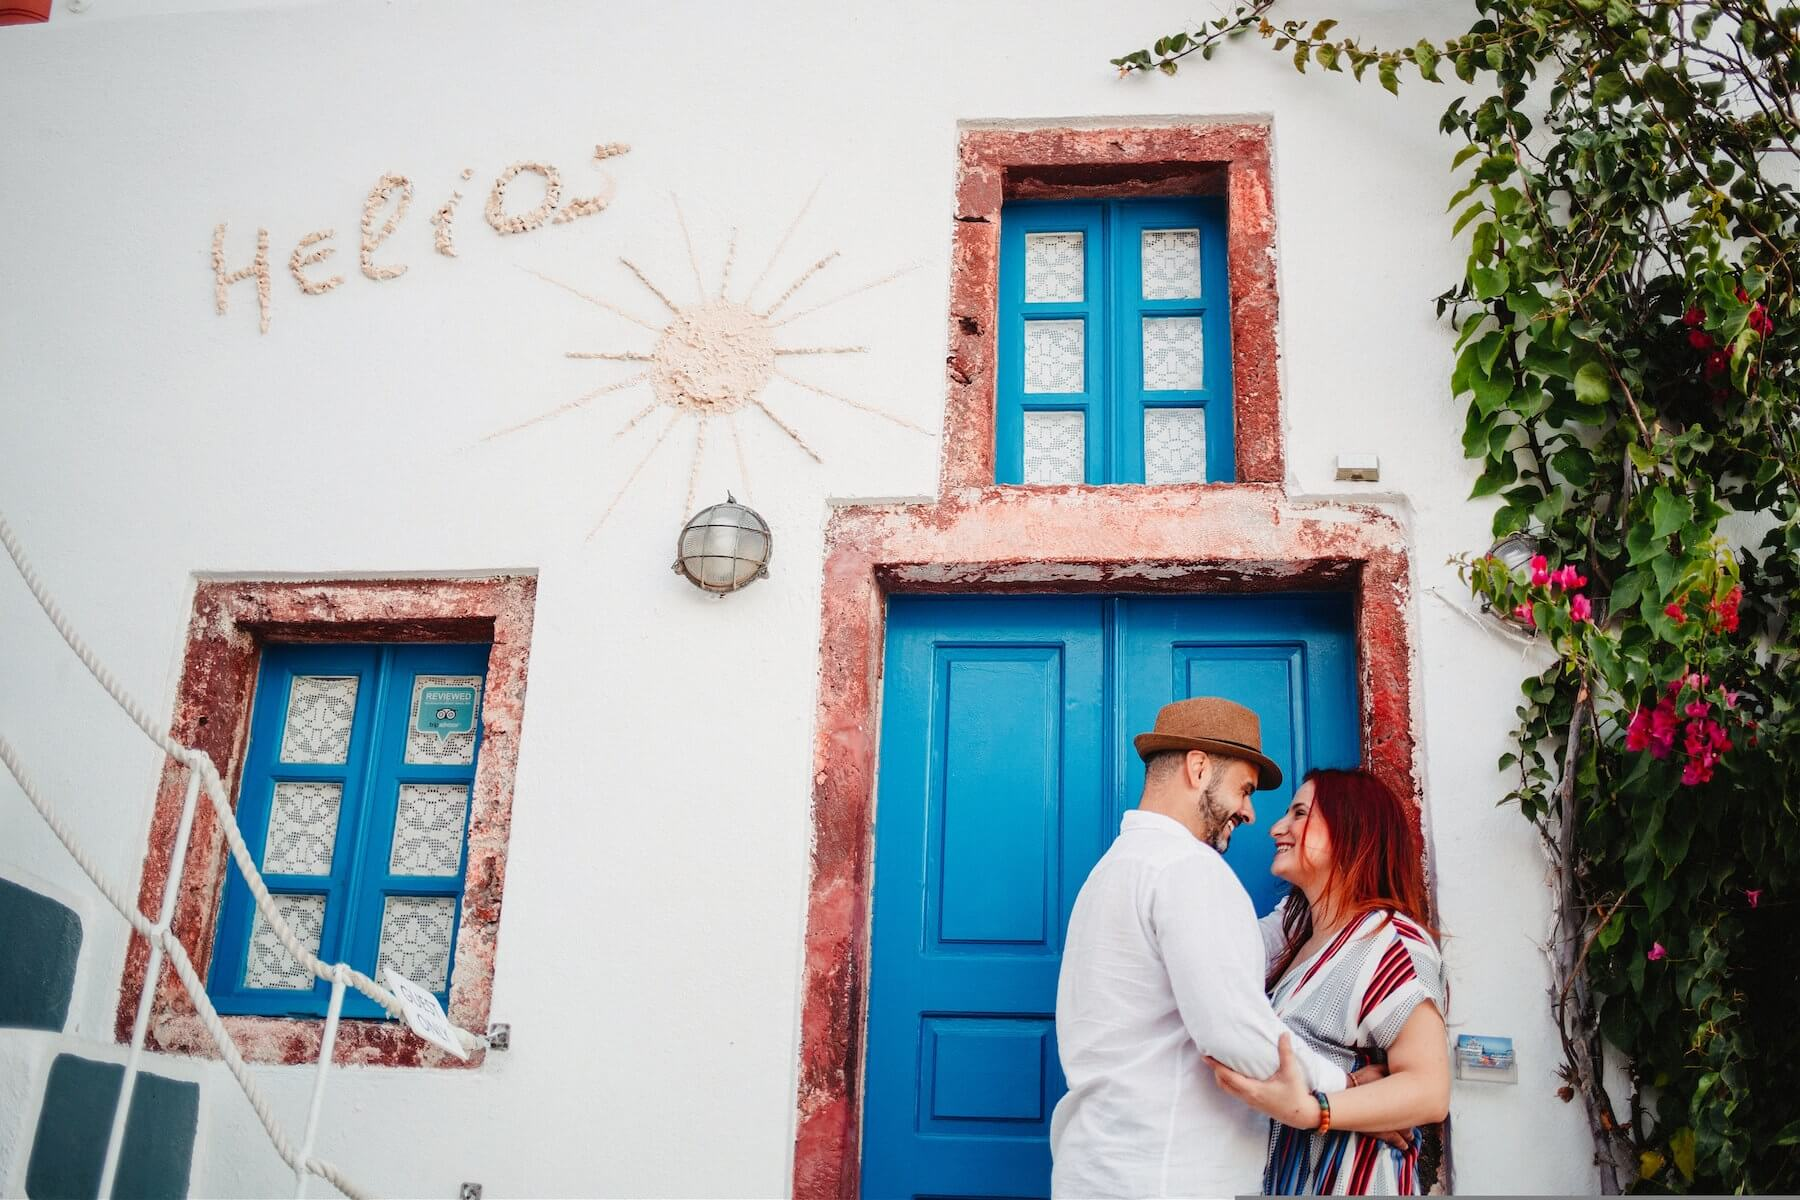 A couple embracing by a colourful wall in Santorini, Greece